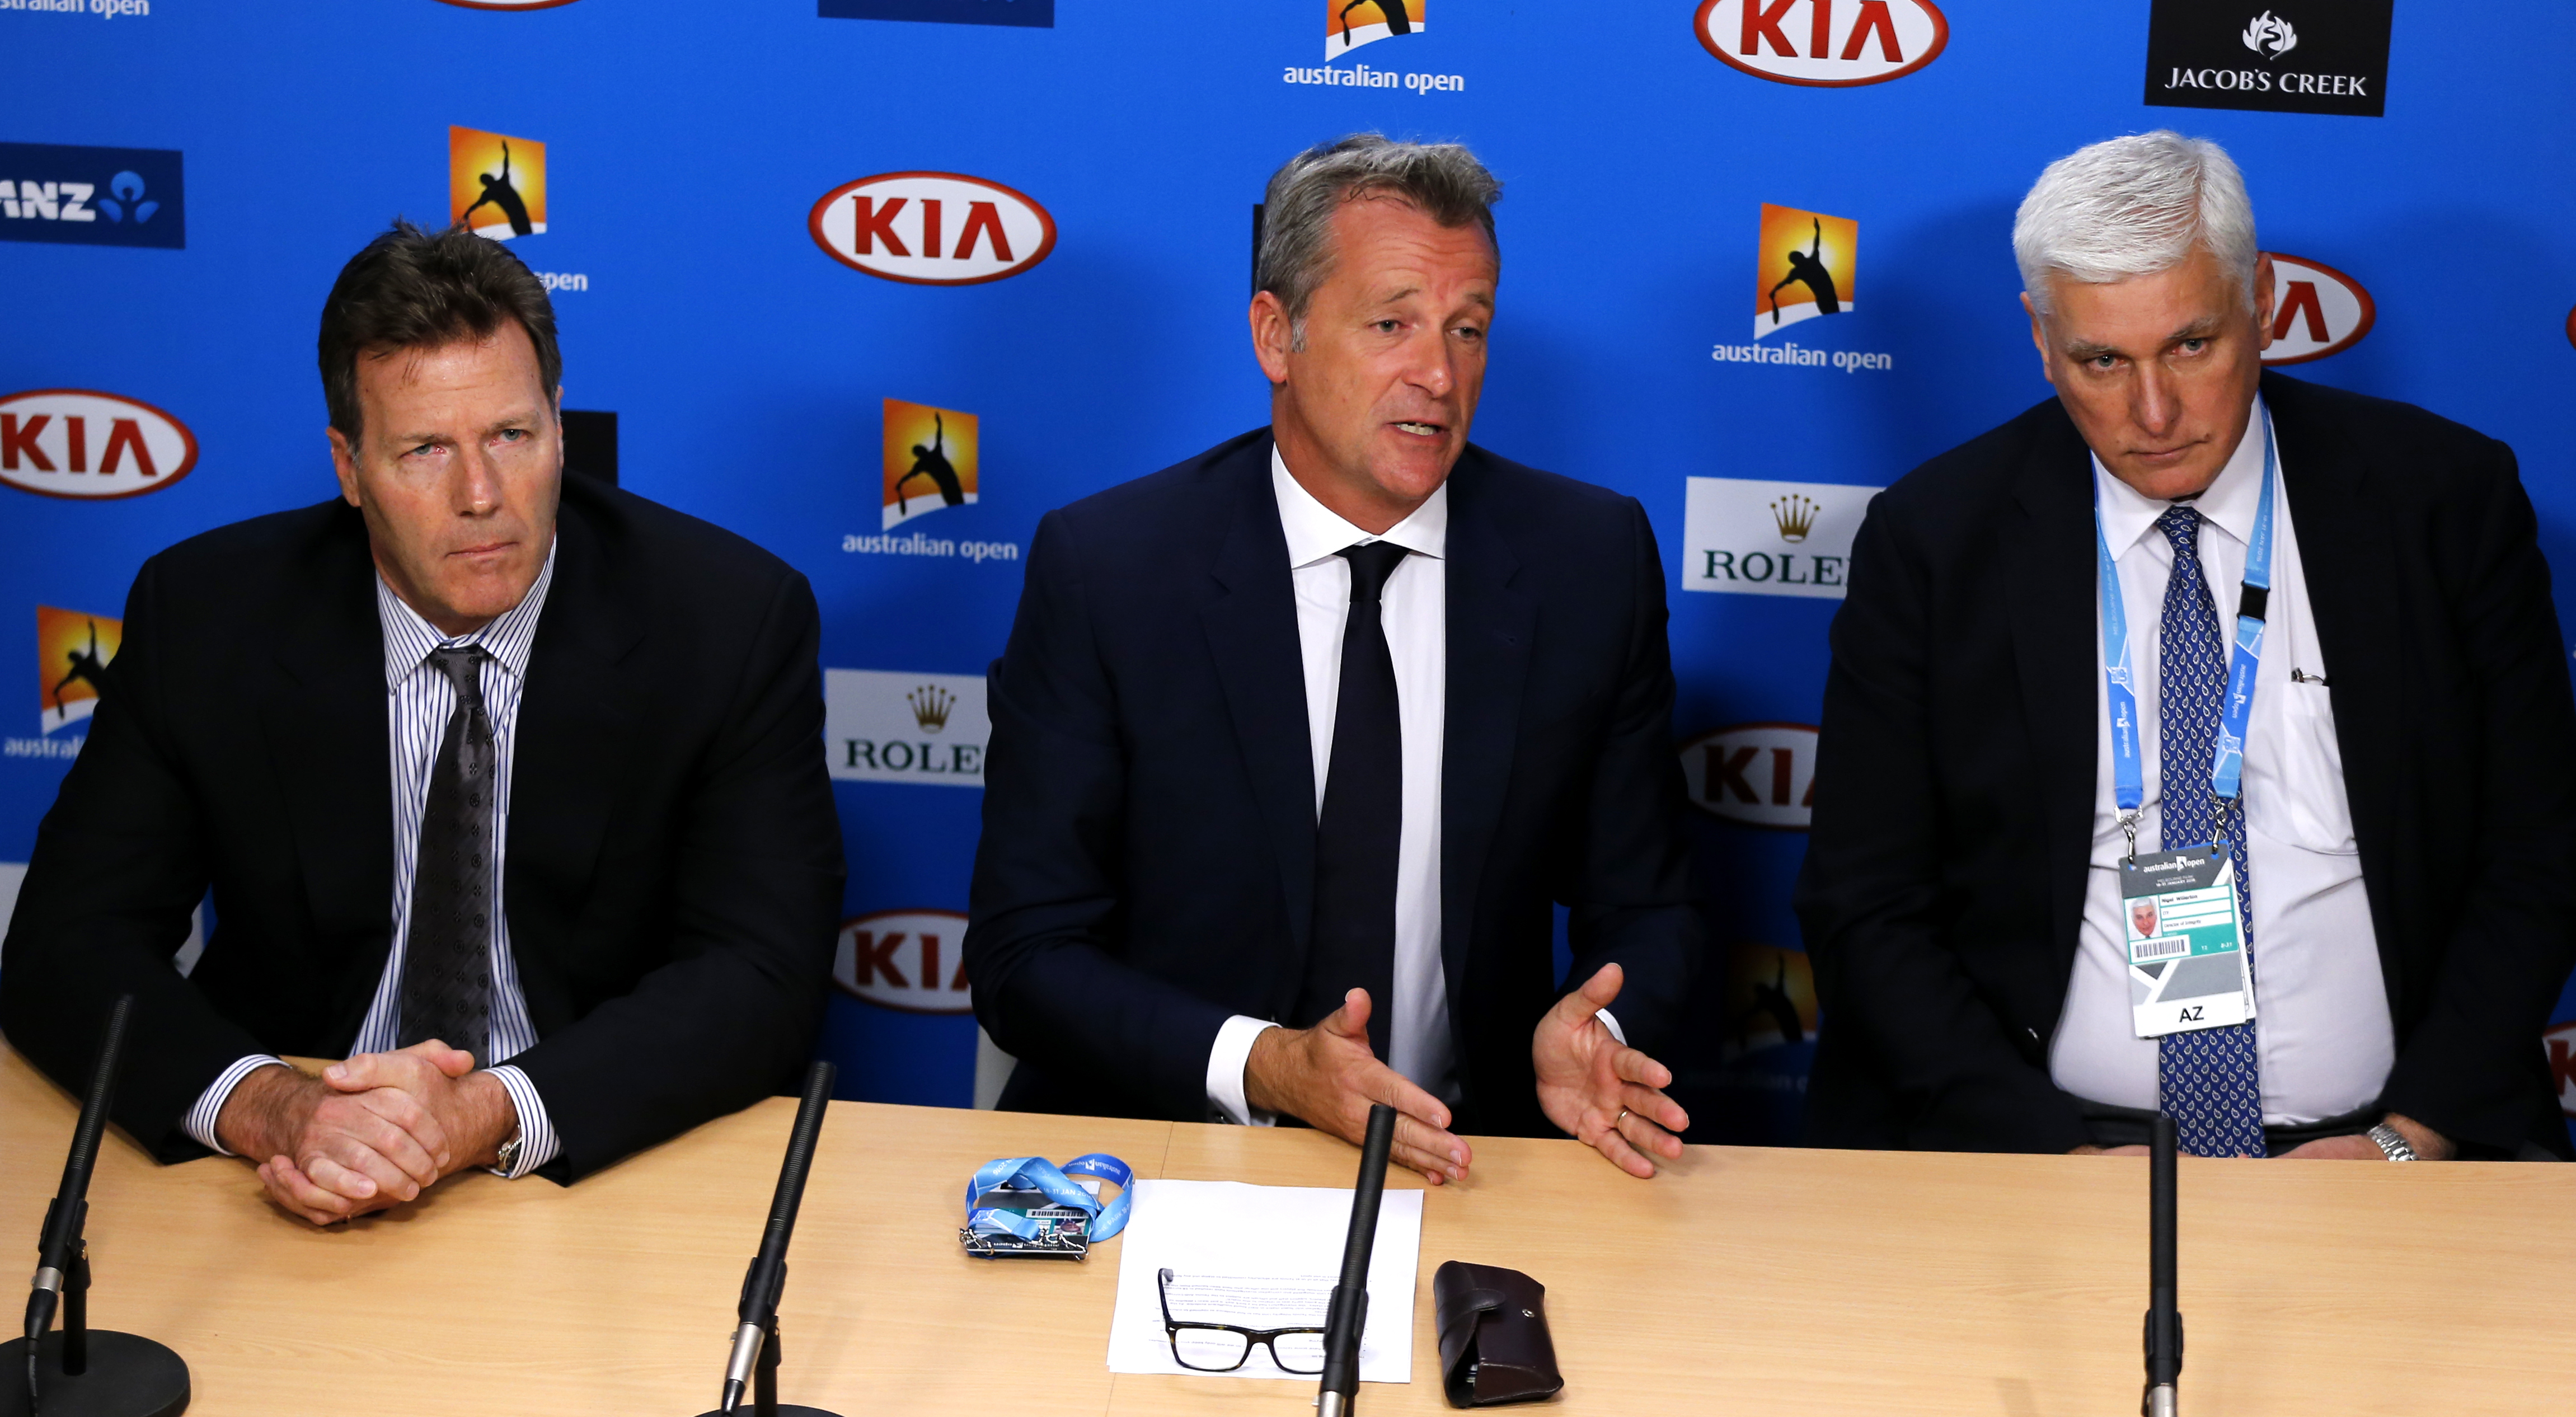 FILE - In this  Jan. 18, 2016 file photo, ATP chairman Chris Kermode, center, with Nigel Willerton, right, head of the Tennis Integrity Unit and ATP Vice Chairman Mark Young, speaks during a press conference at the Australian Open tennis championships in